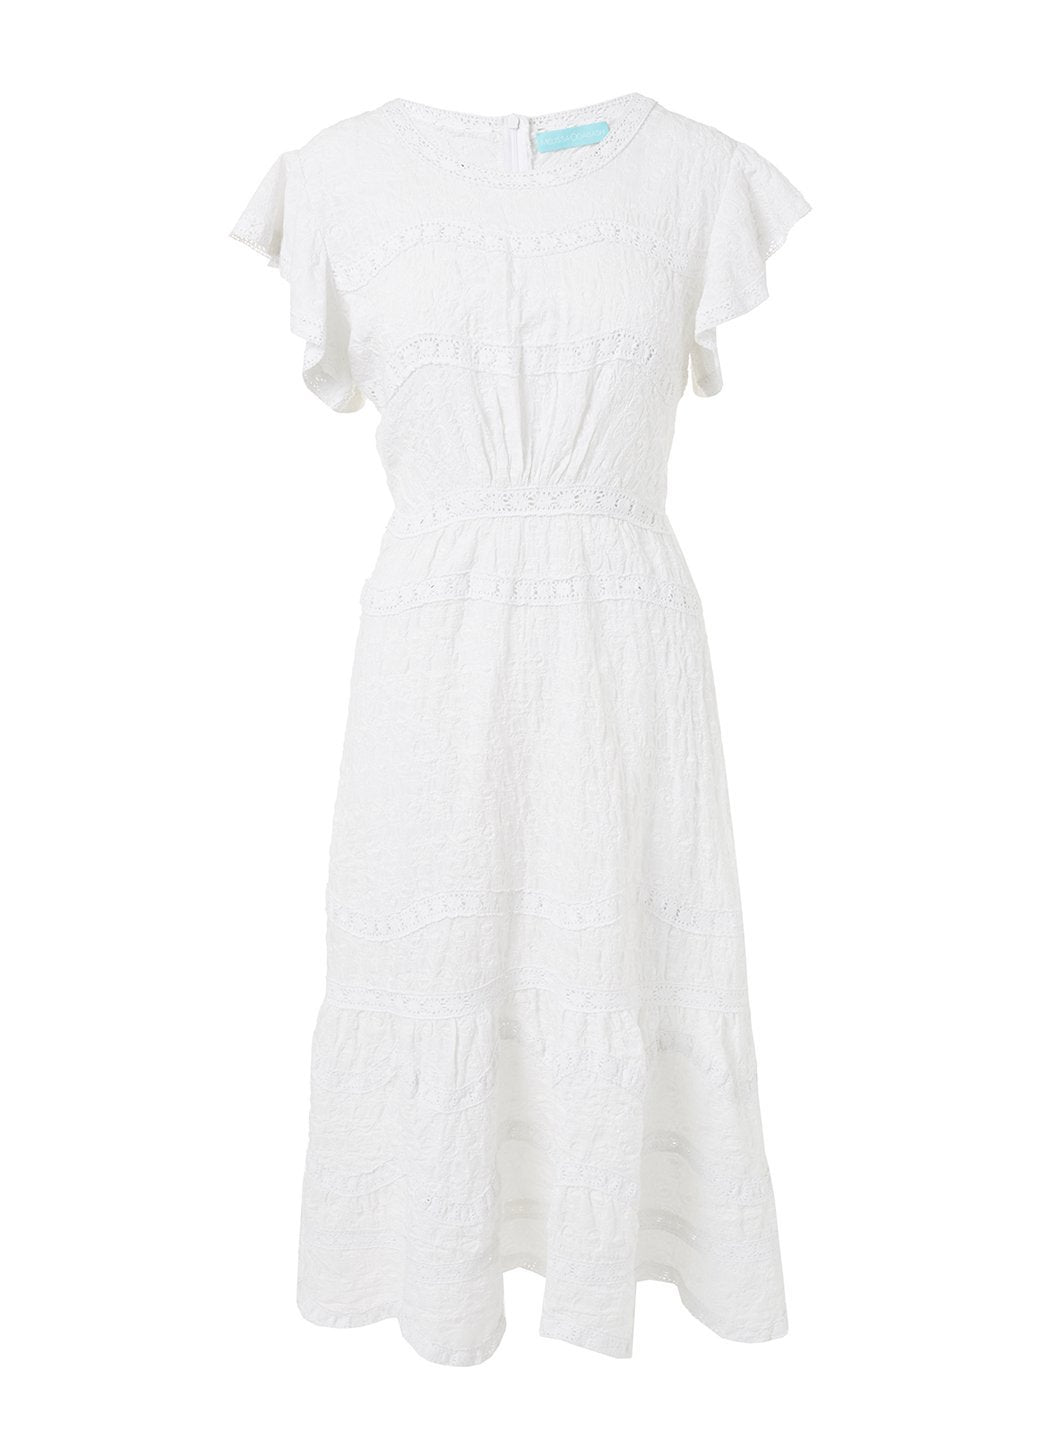 louisa white highneck midi tea dress 2019